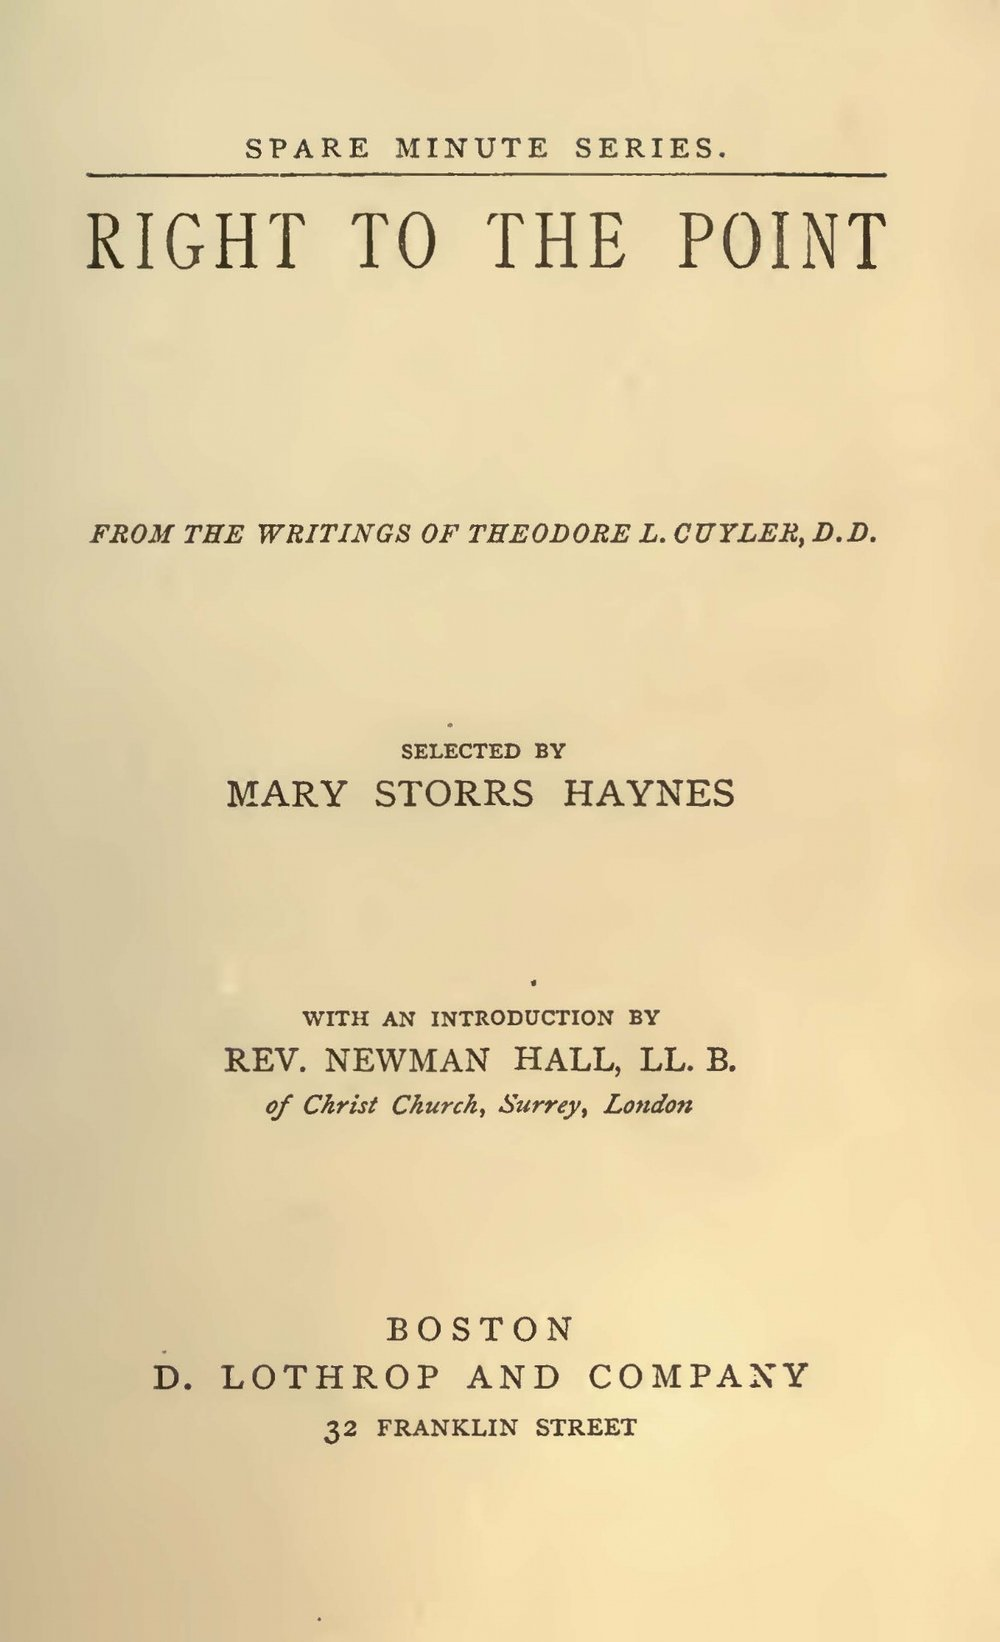 Cuyler, Theodore Ledyard, Right to the Point Title Page.jpg